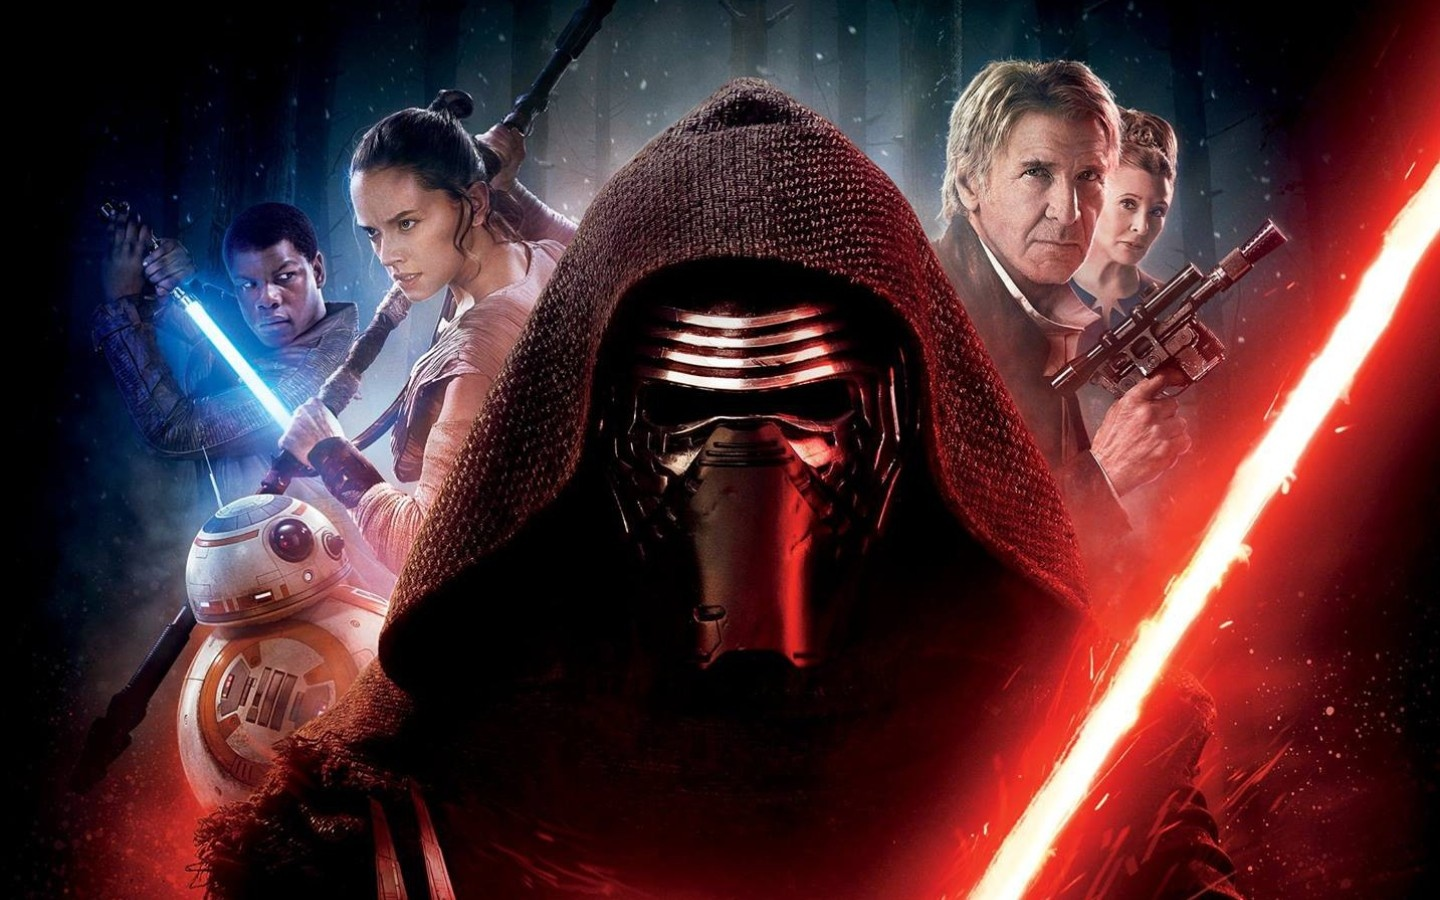 star wars the force awakens hollywood movie wallpapers - 1440x900